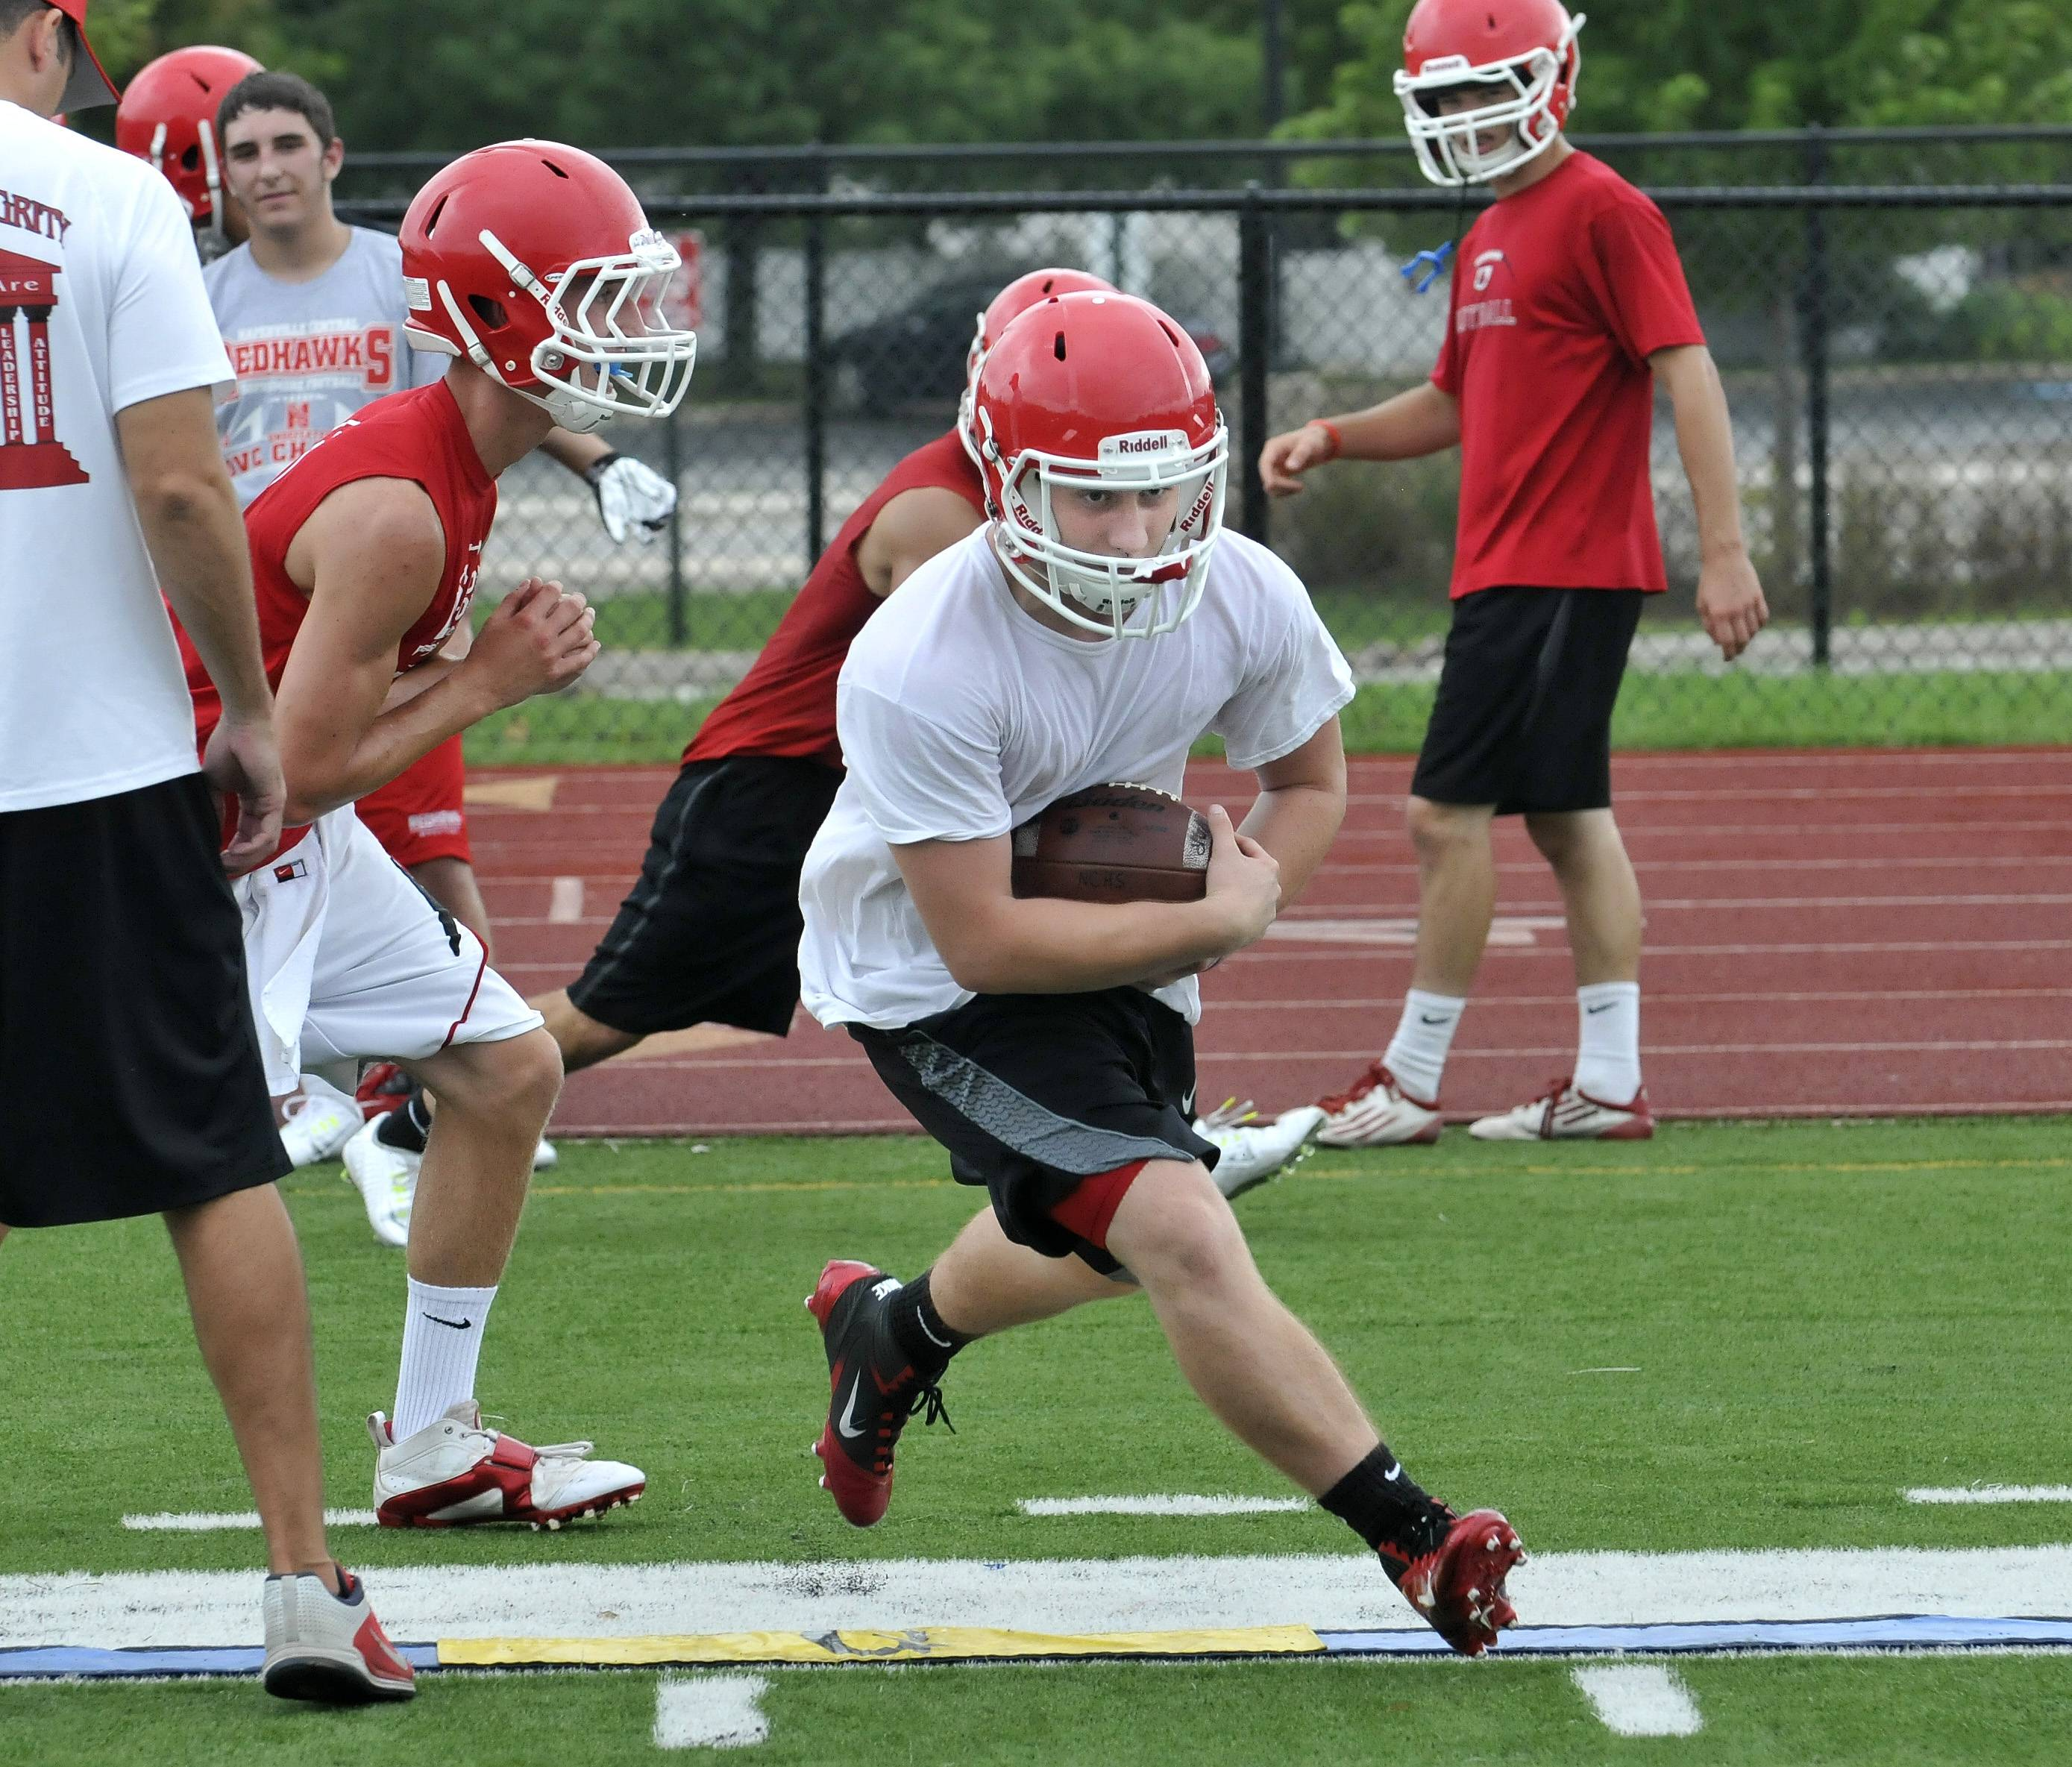 Naperville Central High School's offensive backs work on inside runs.